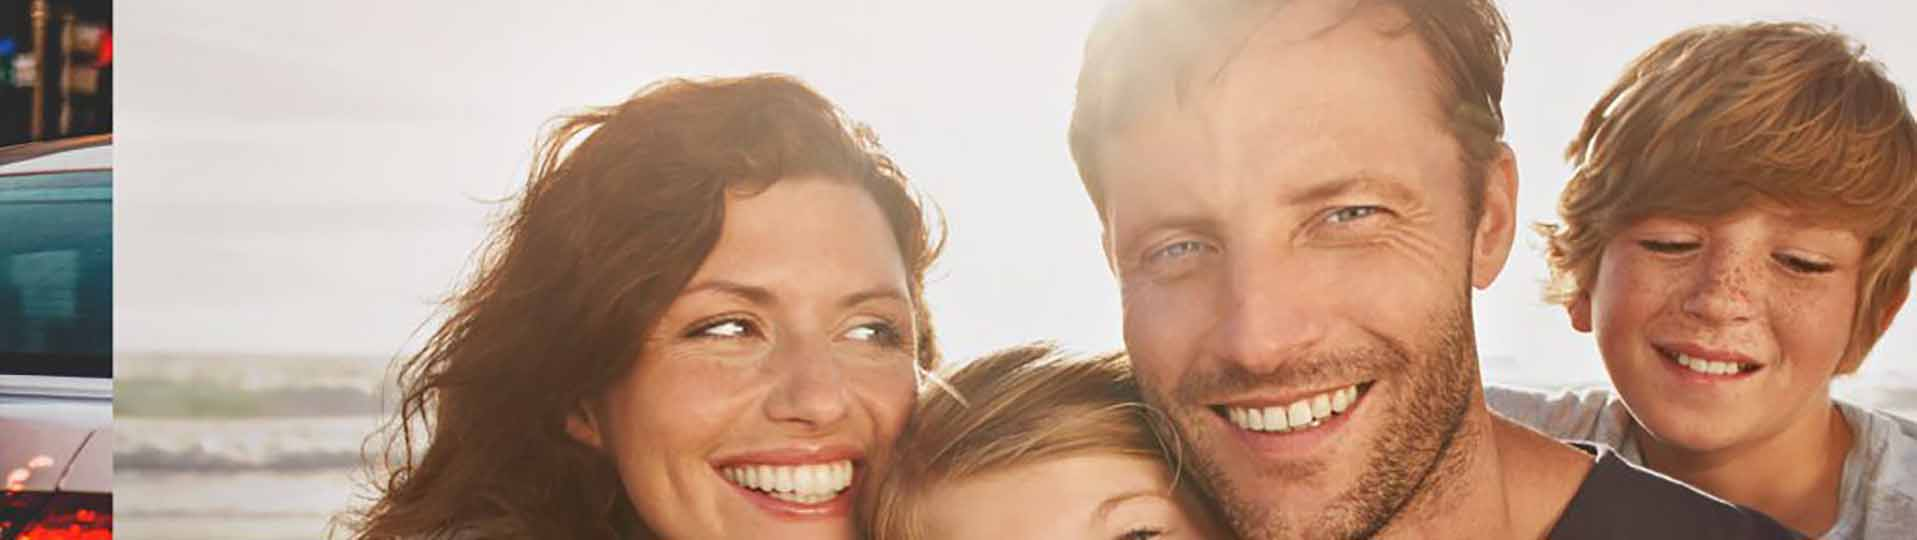 young family of 4 smiling